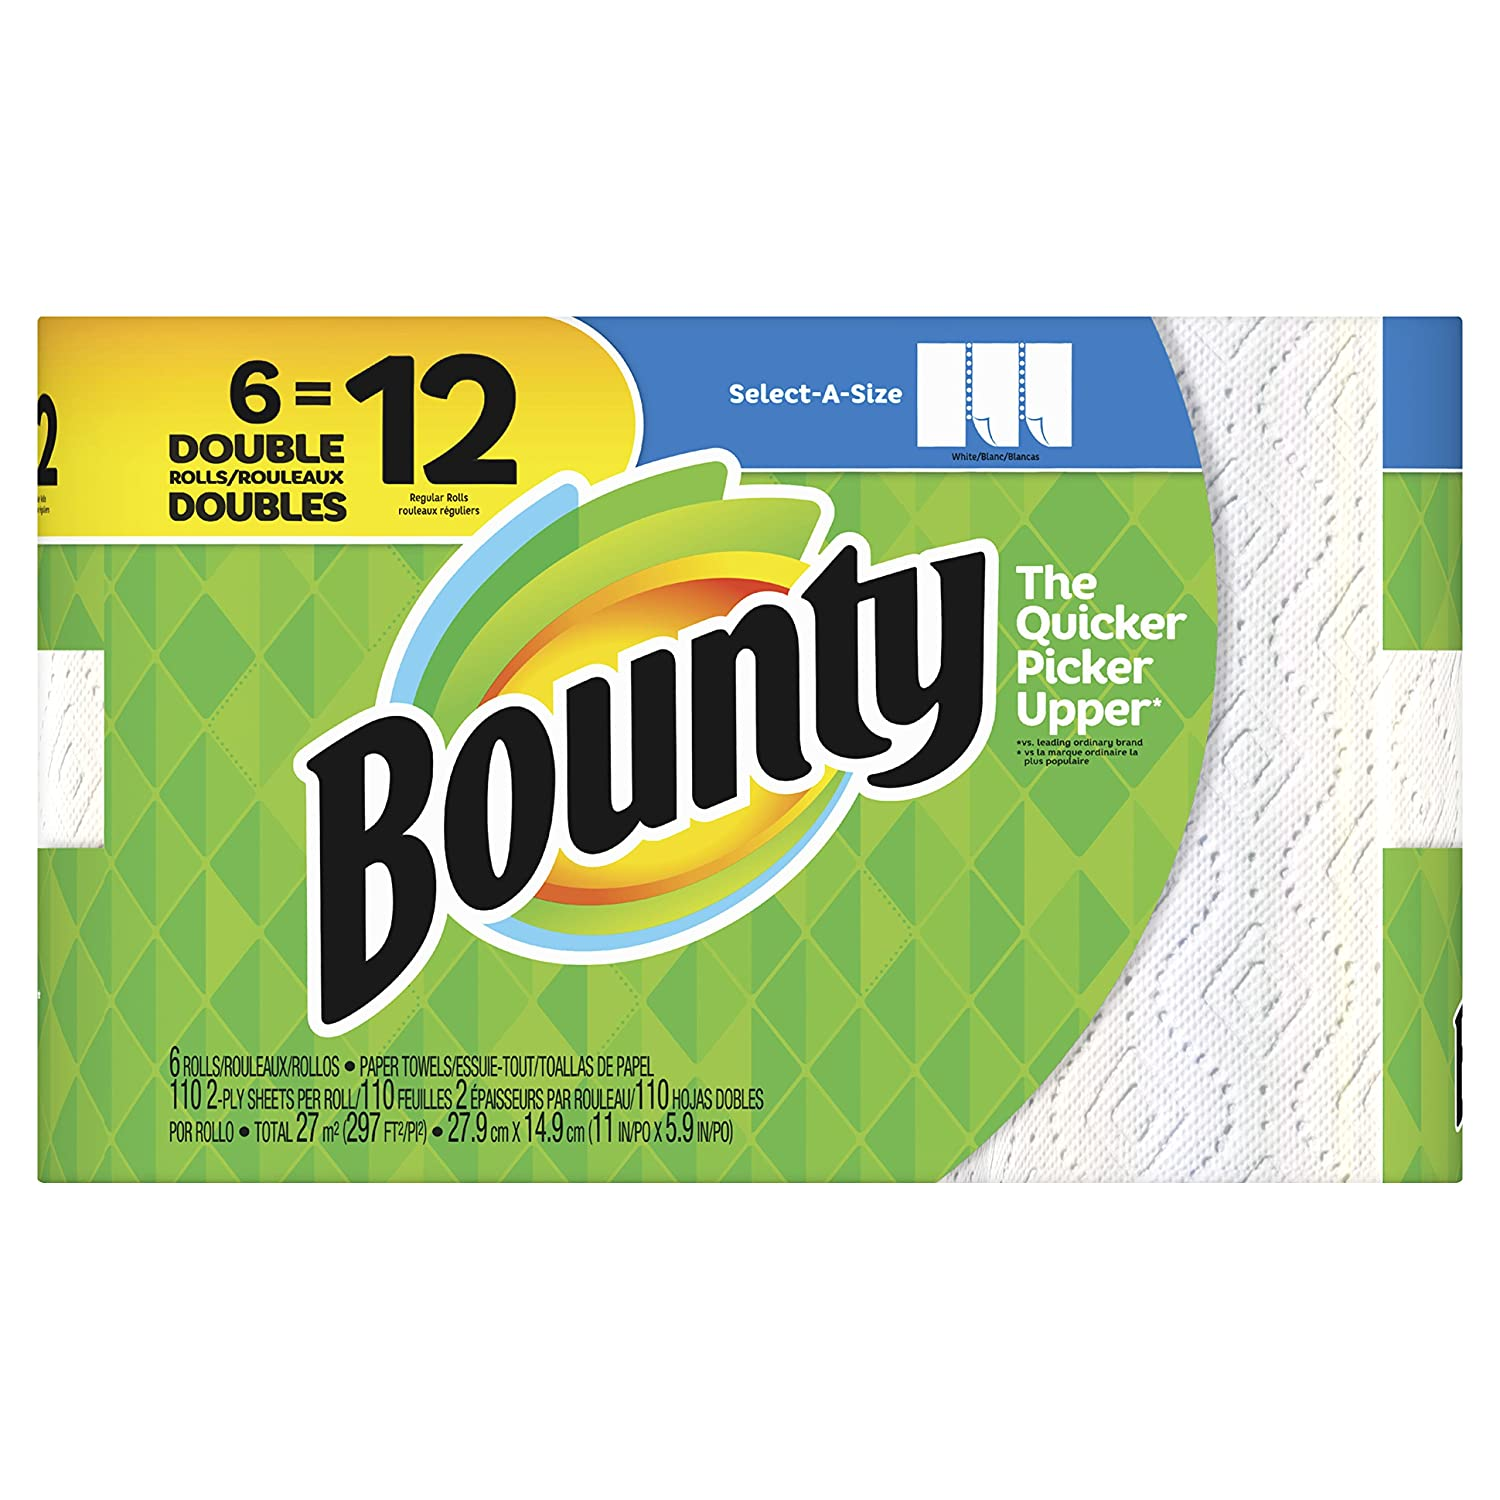 Amazon.com: Bounty Select-a-Size Paper Towels - 6 Double Rolls: Home Improvement